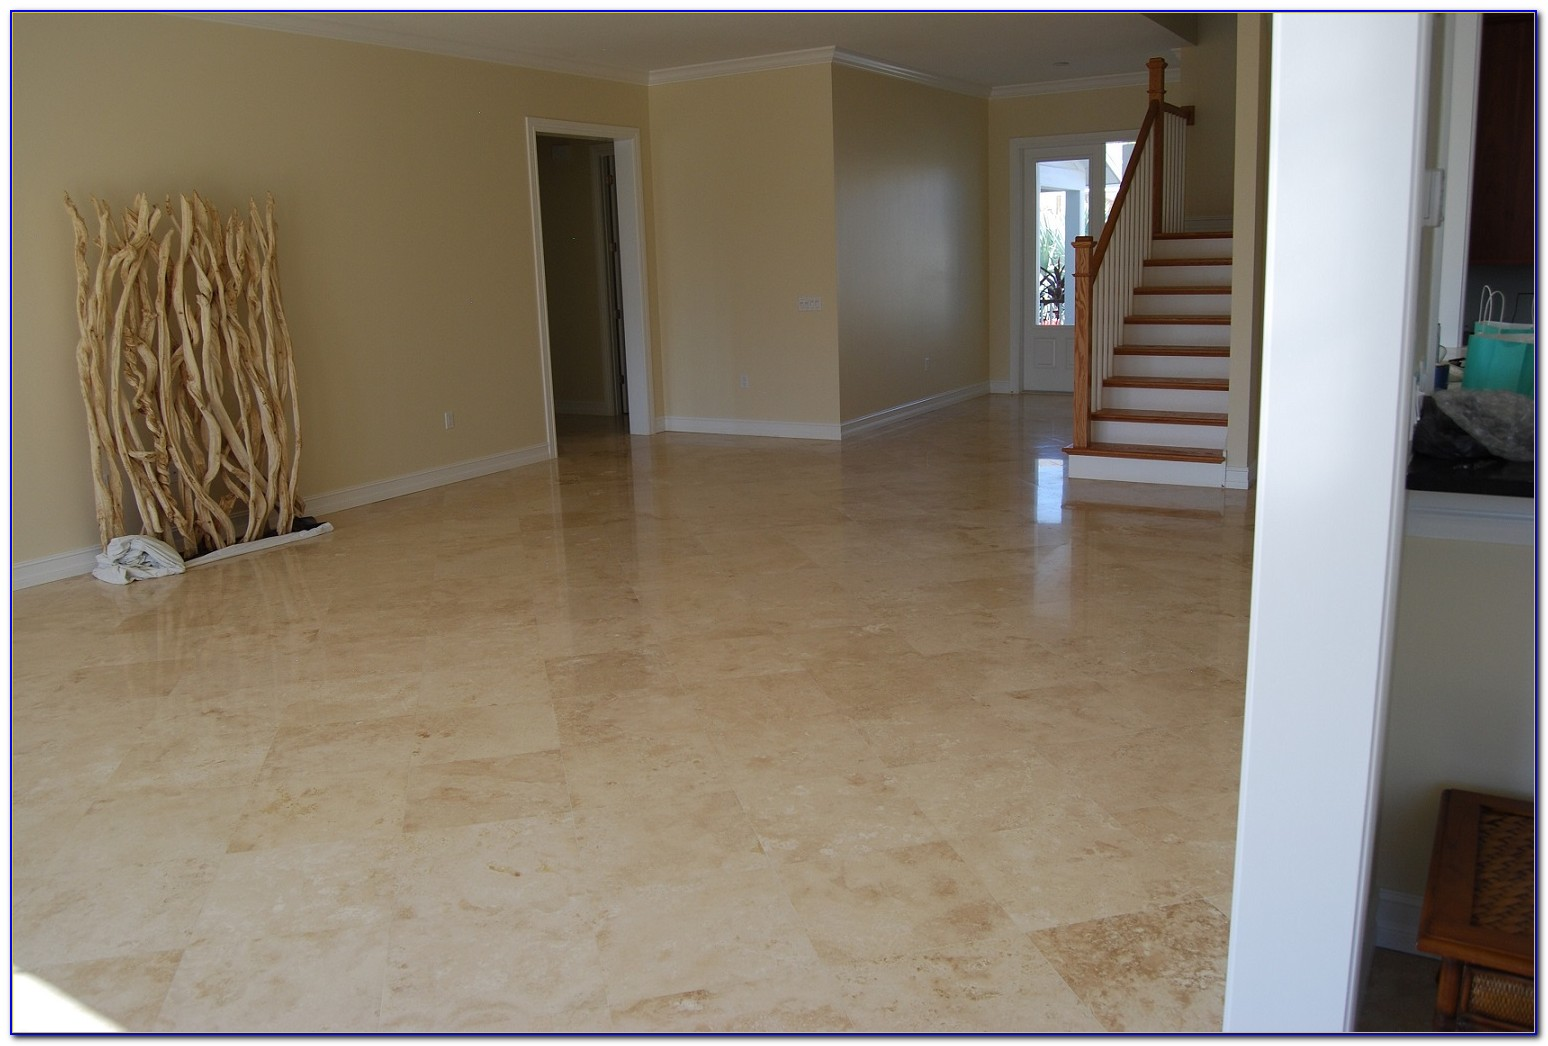 Travertine Flooring Pros And Cons : Travertine tile pros and cons backsplash tiles home